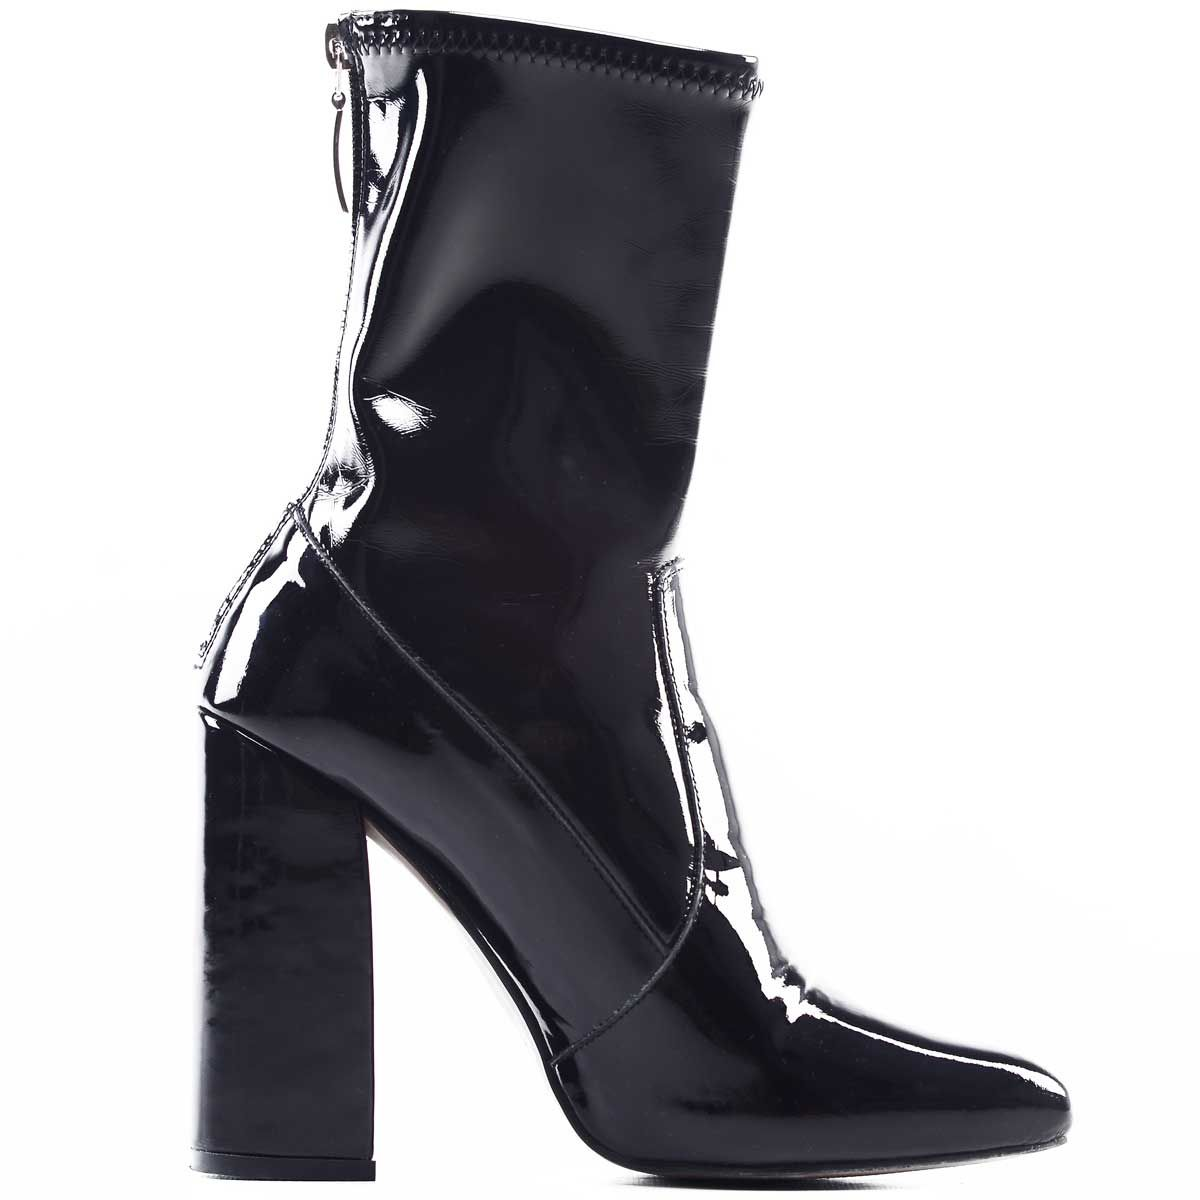 Montevita Patent Heeled Ankle Boot in Black